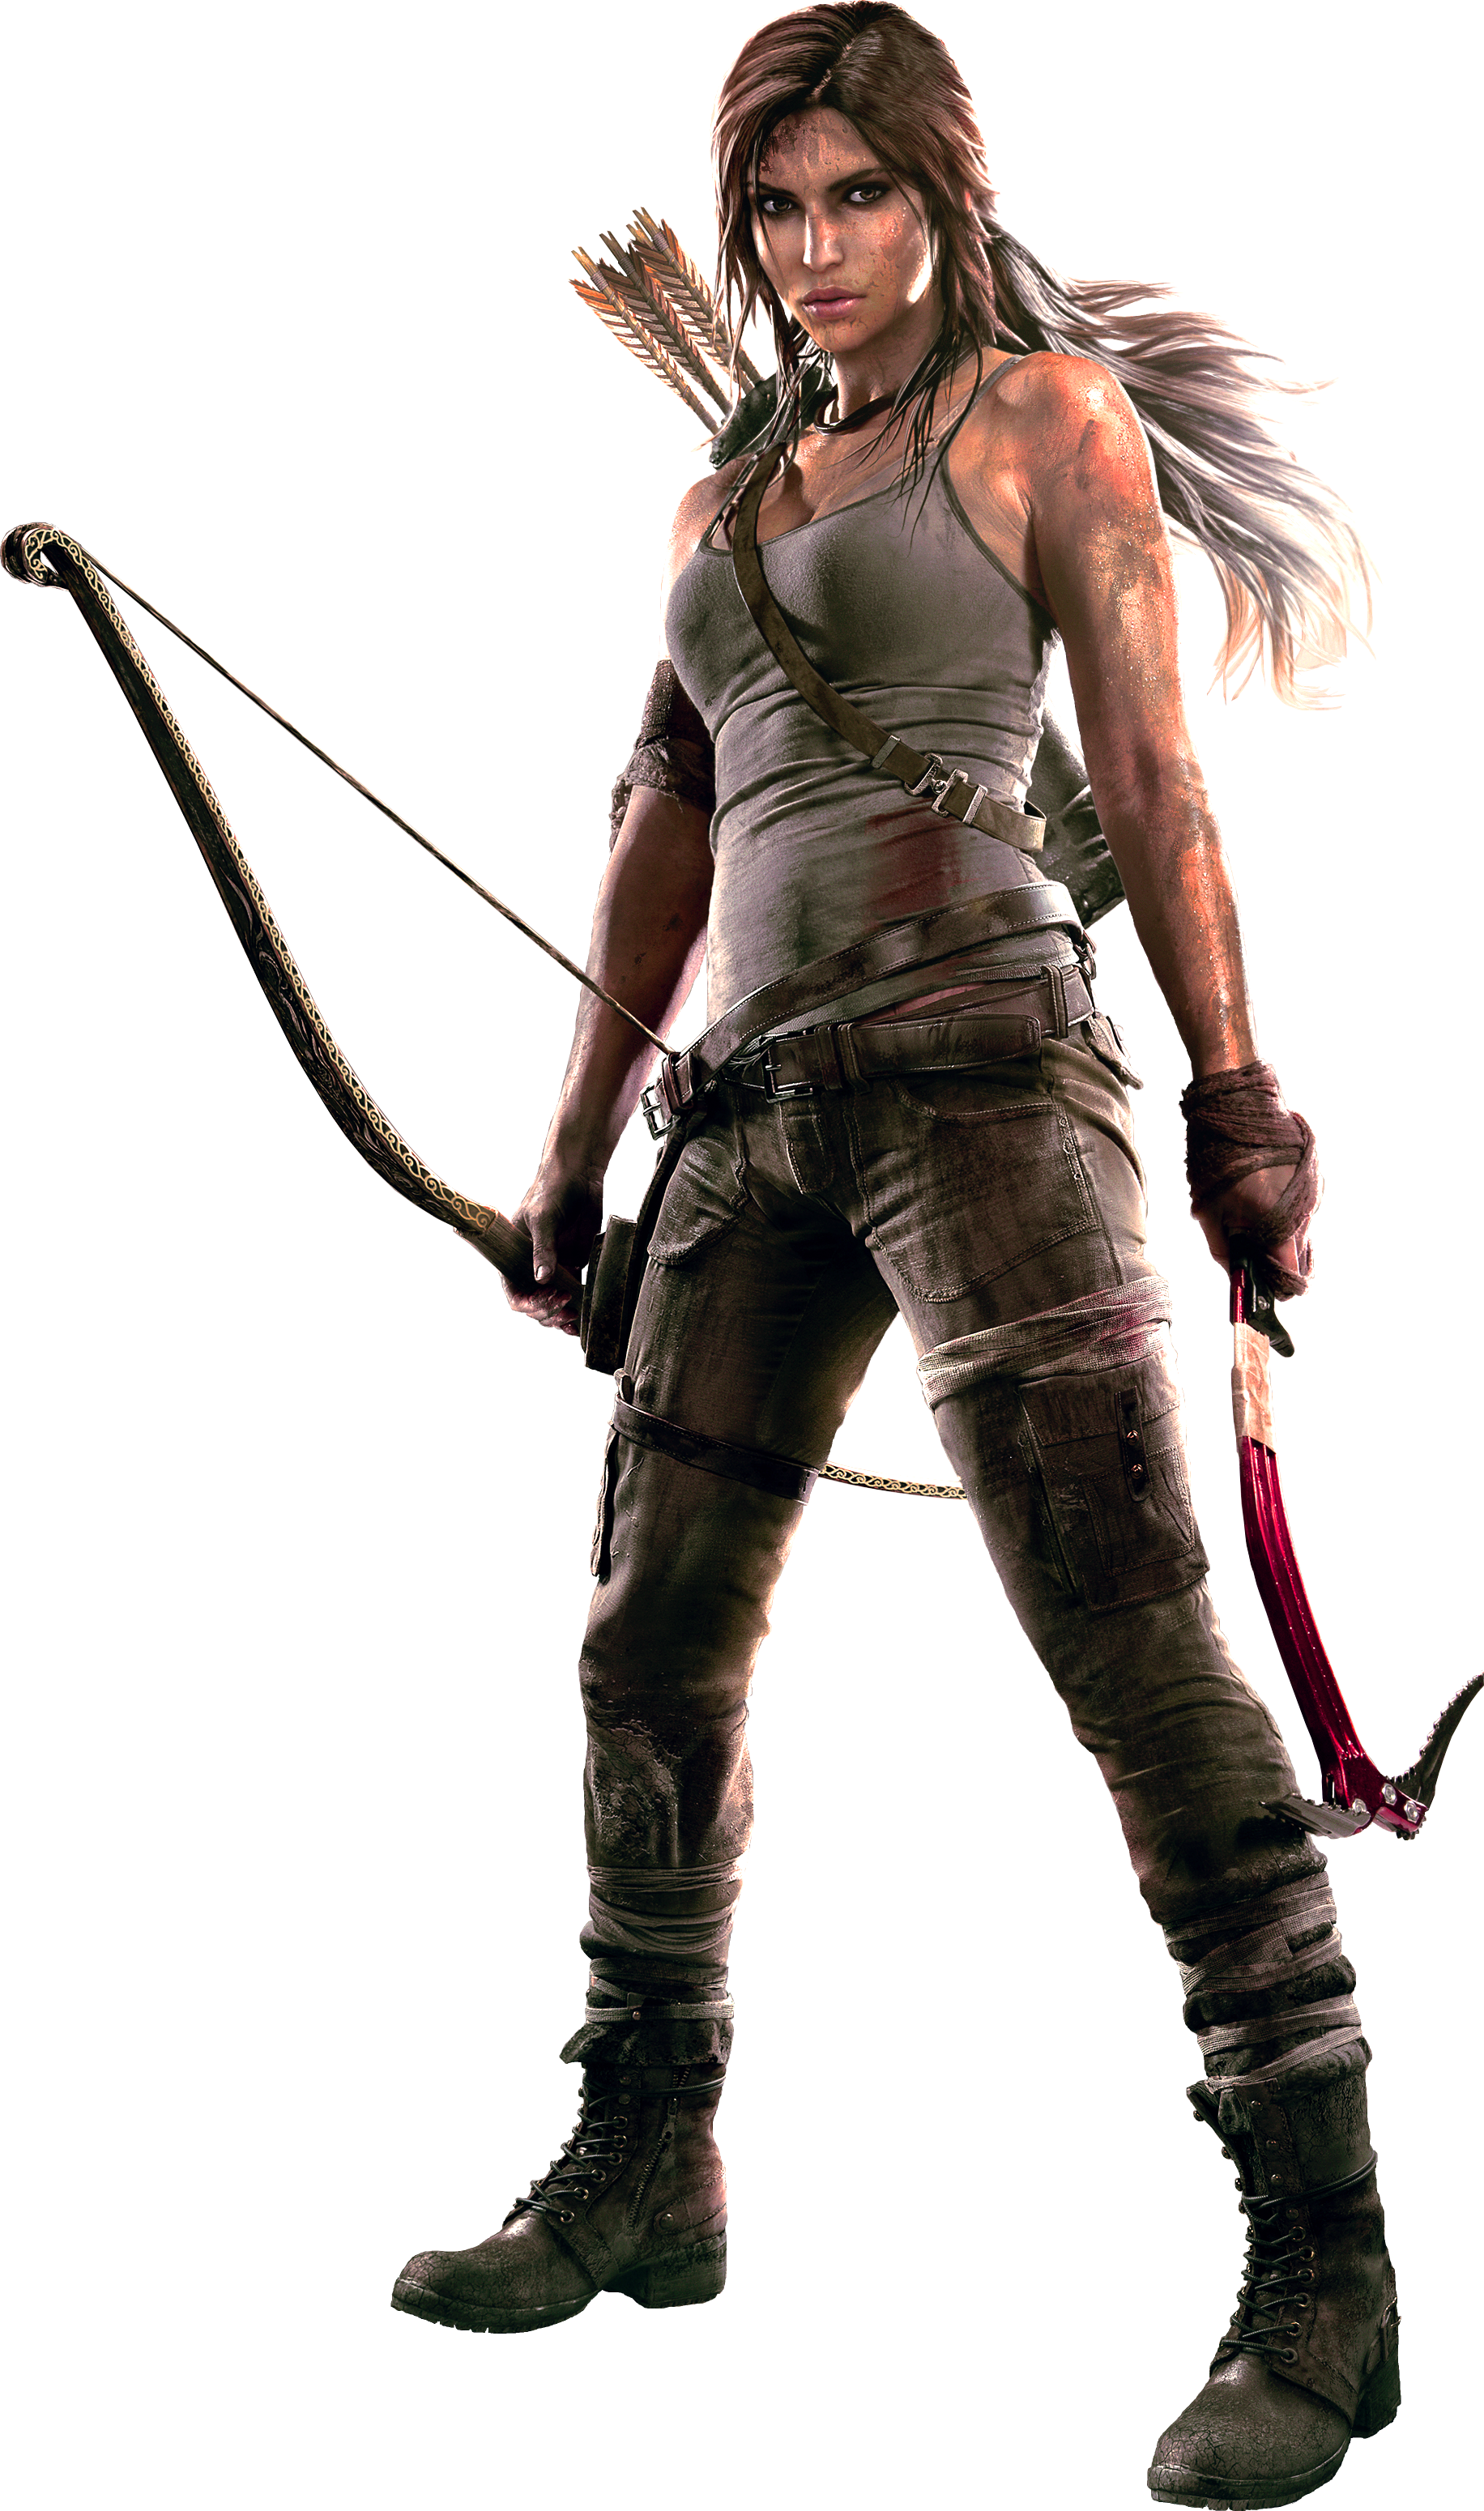 Download Lara Croft Tomb Raider With Bow Png Image For Free